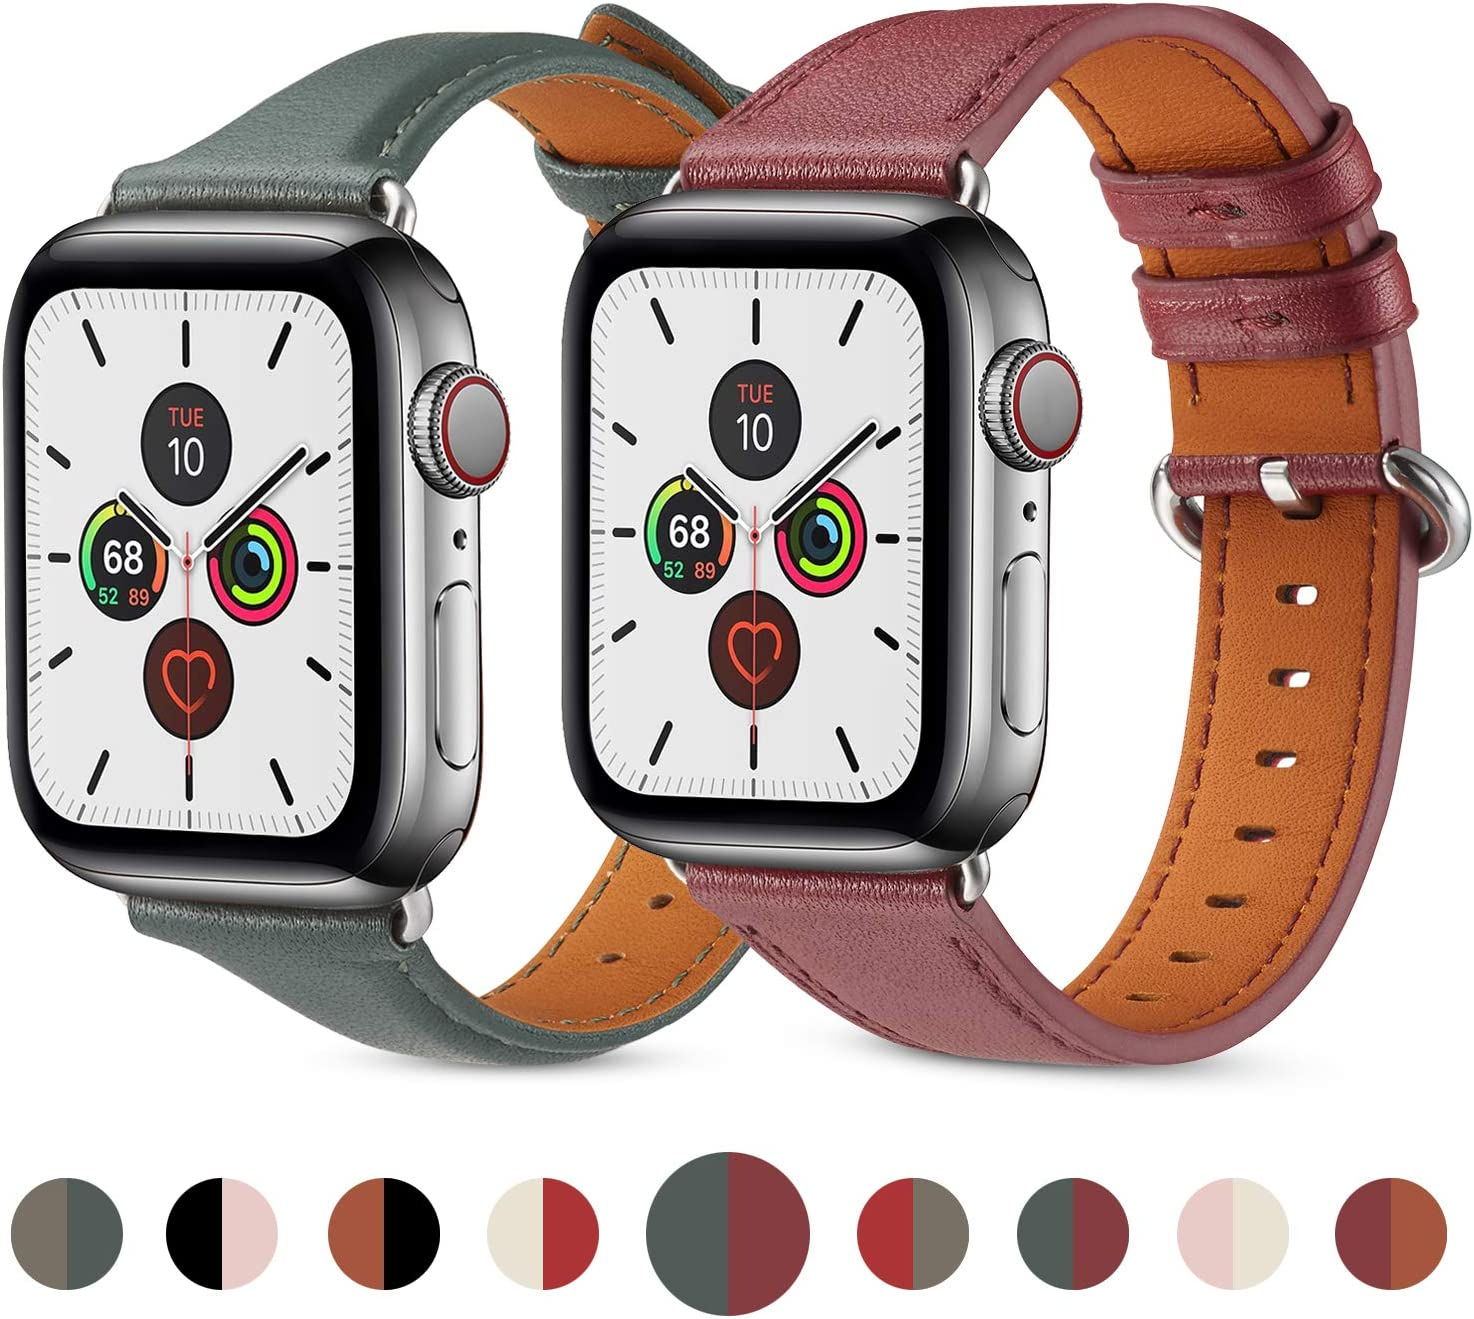 (2PACK)Compatible with Apple Watch Band 38mm 40mm Women for Series 6 5 4 3 2 1. Pierre Case for iWatch Bands Durable Genuine Leather Replacement Strap [2 Pack Set] (Burgundy & Midnight Green)